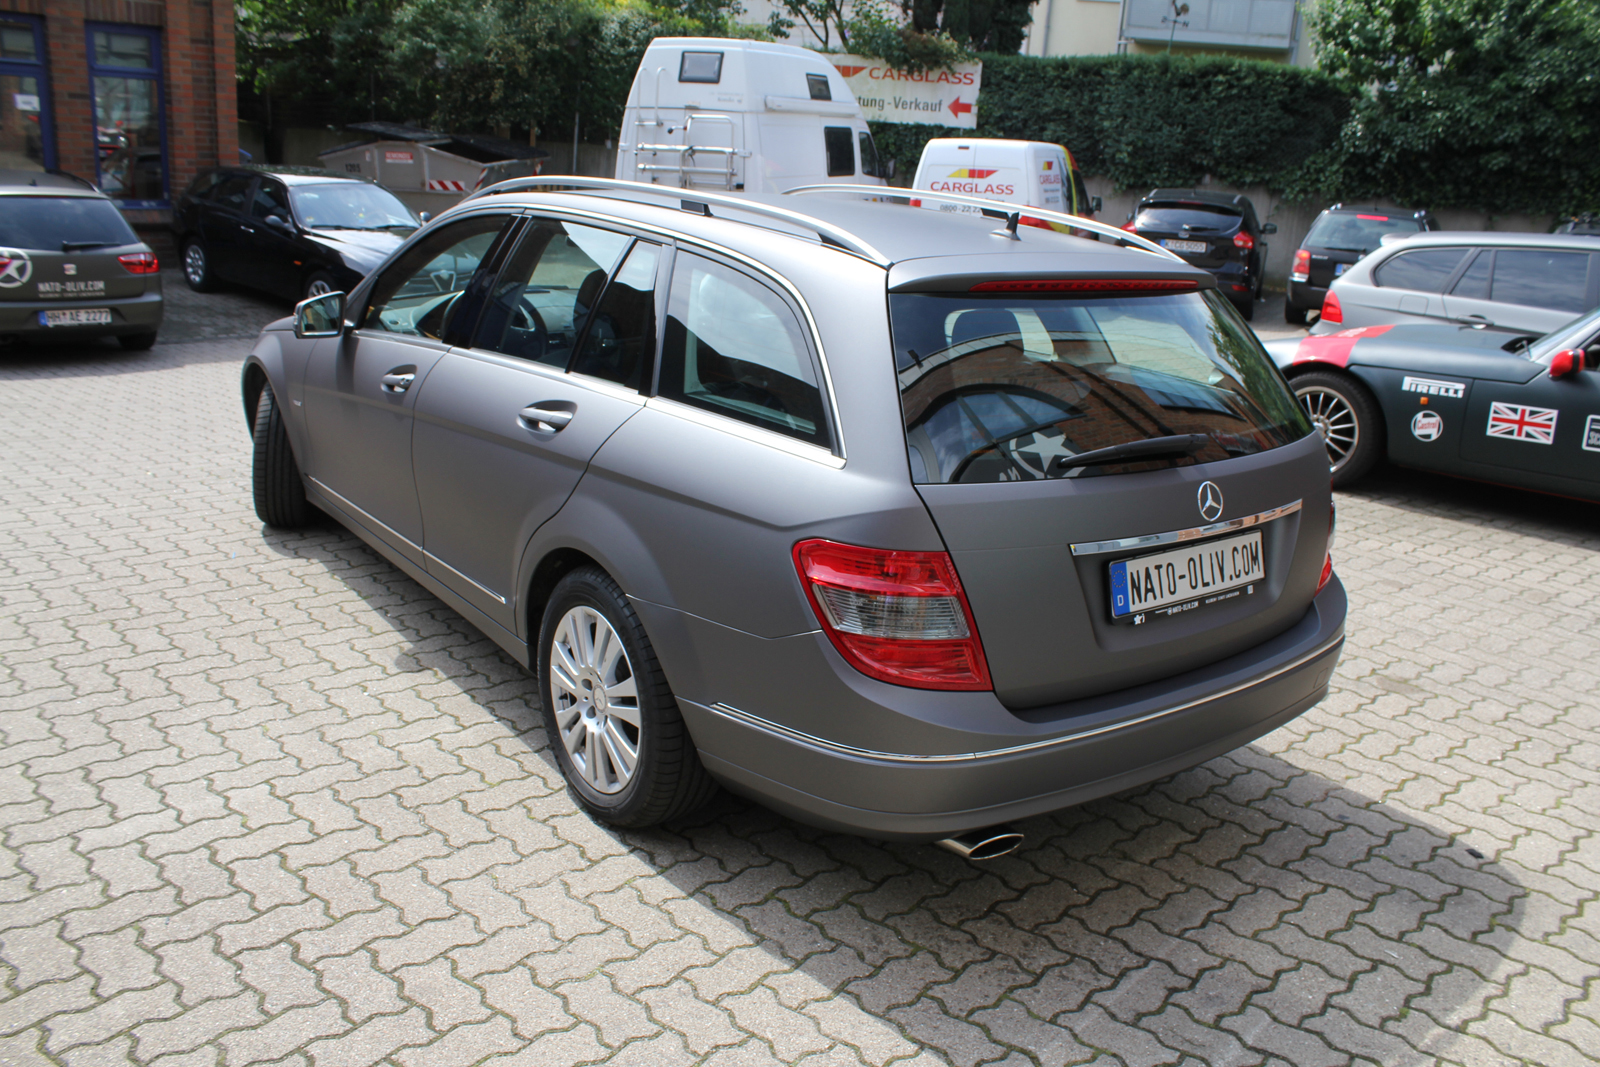 Anthrazit Matt Metallic Lack Farbcode Mercedes E-klasse In Anthrazit Matt Metallic | Nato-oliv.com